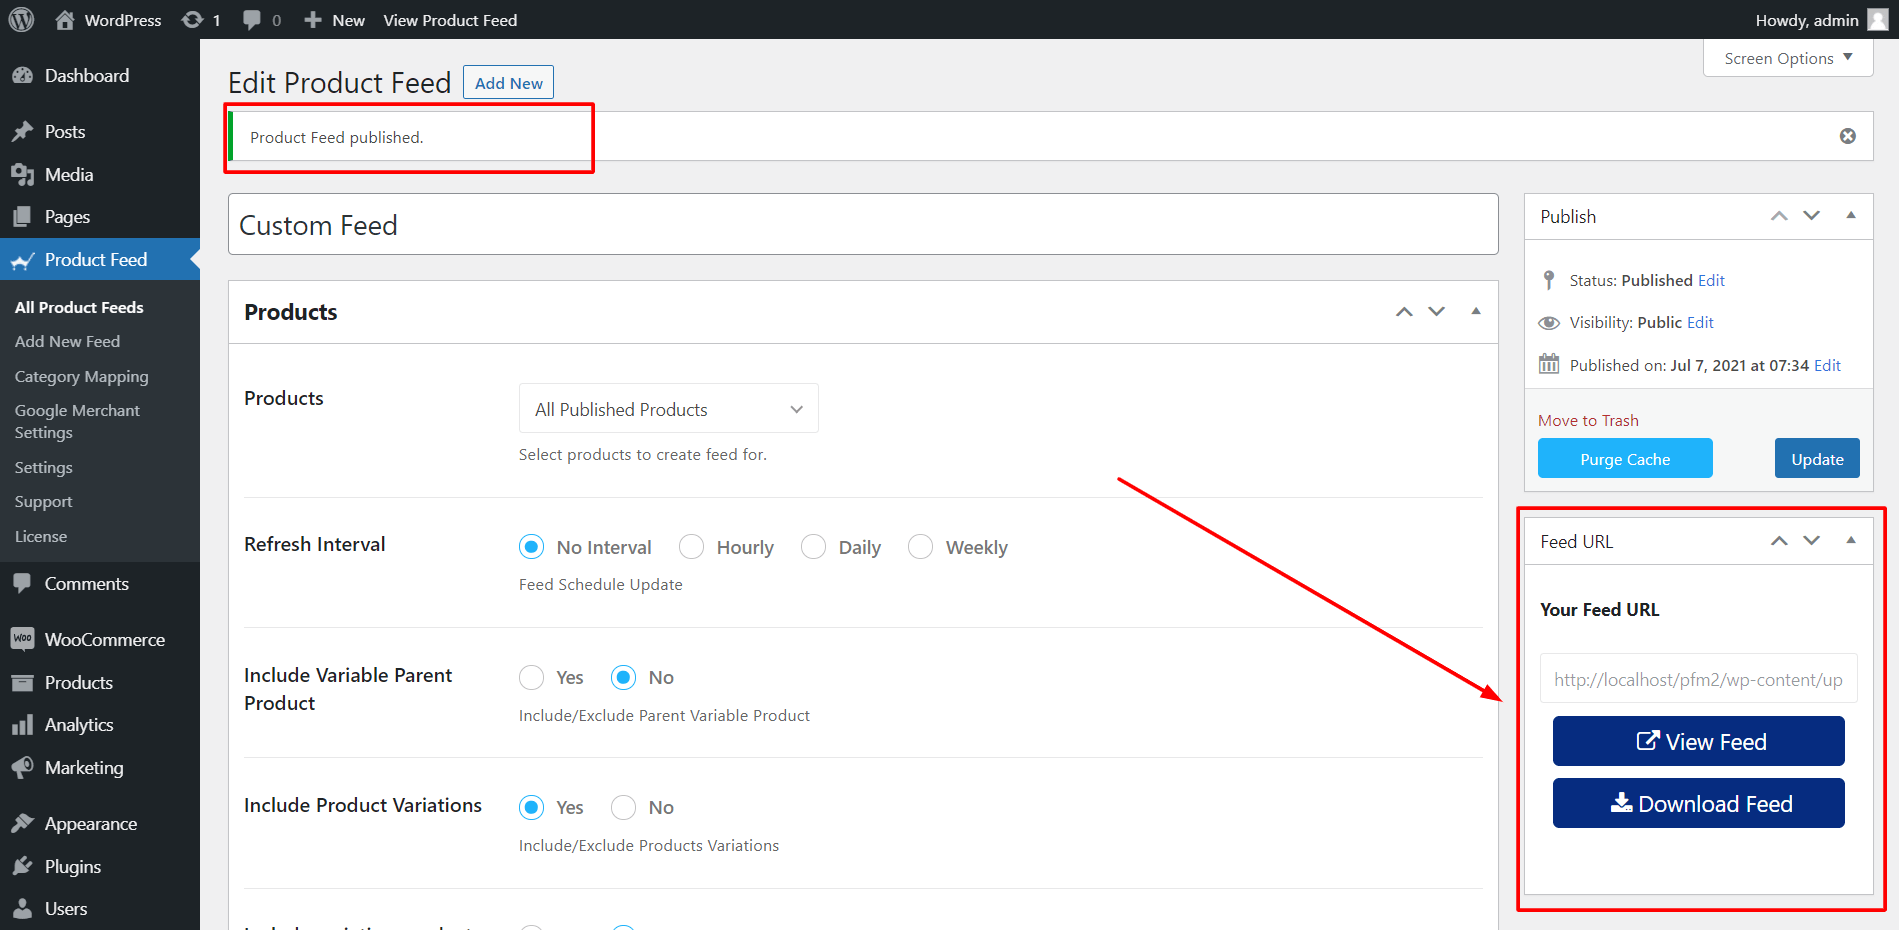 Product Feed Manager View/ Download Feed Options